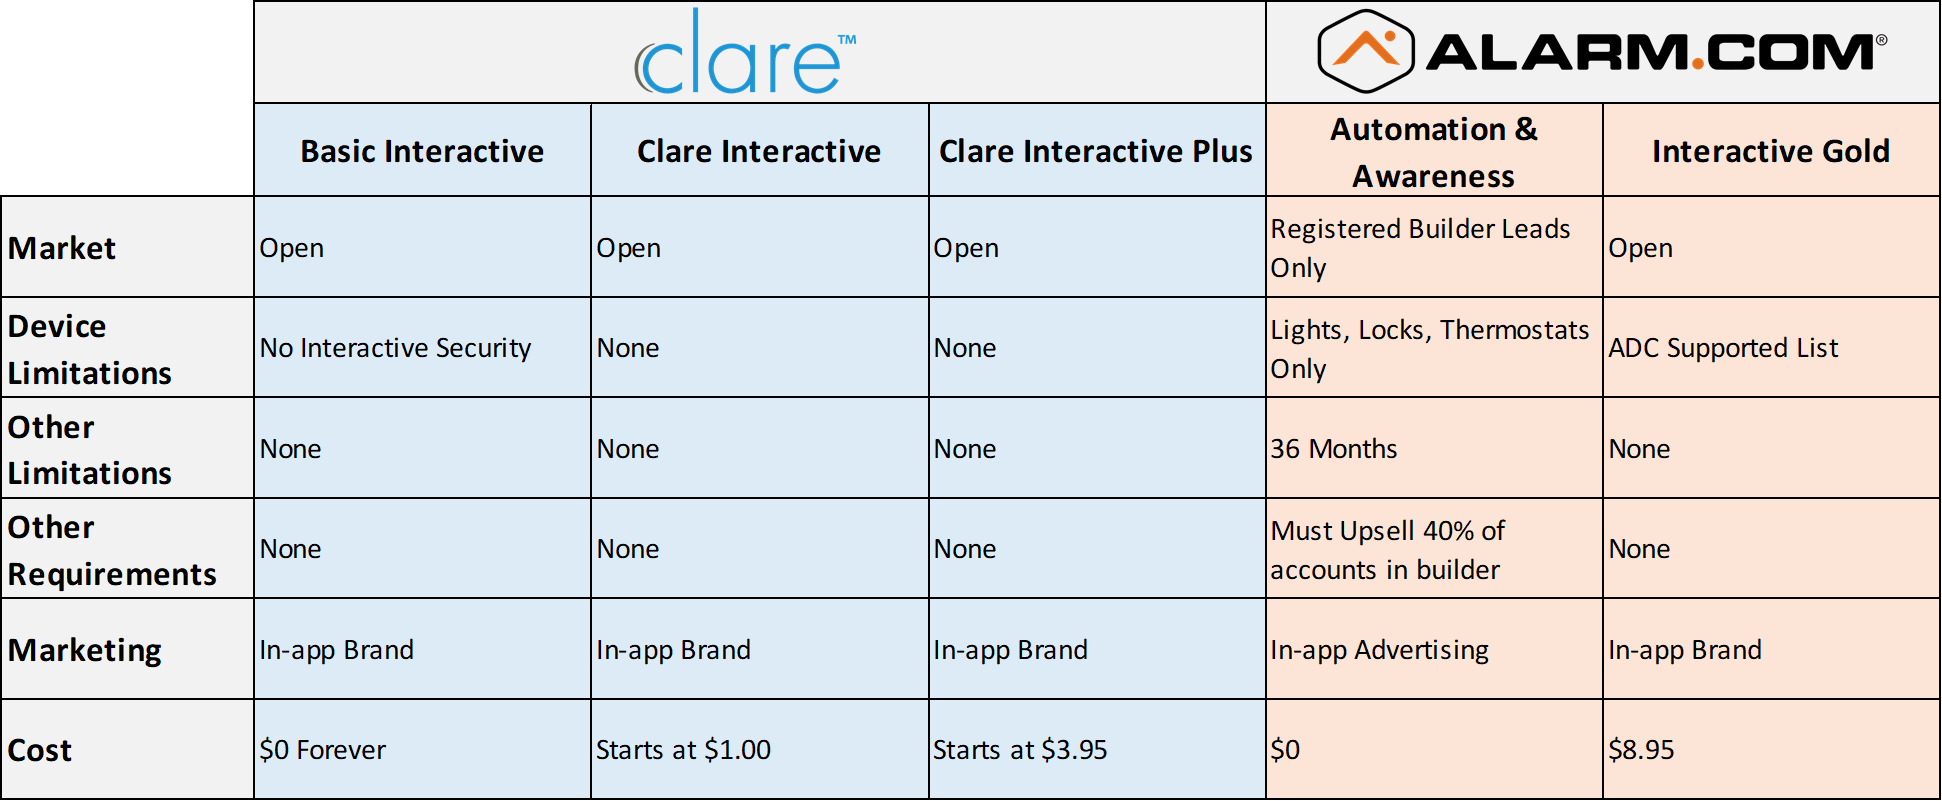 Clare Builder Program - The Competition